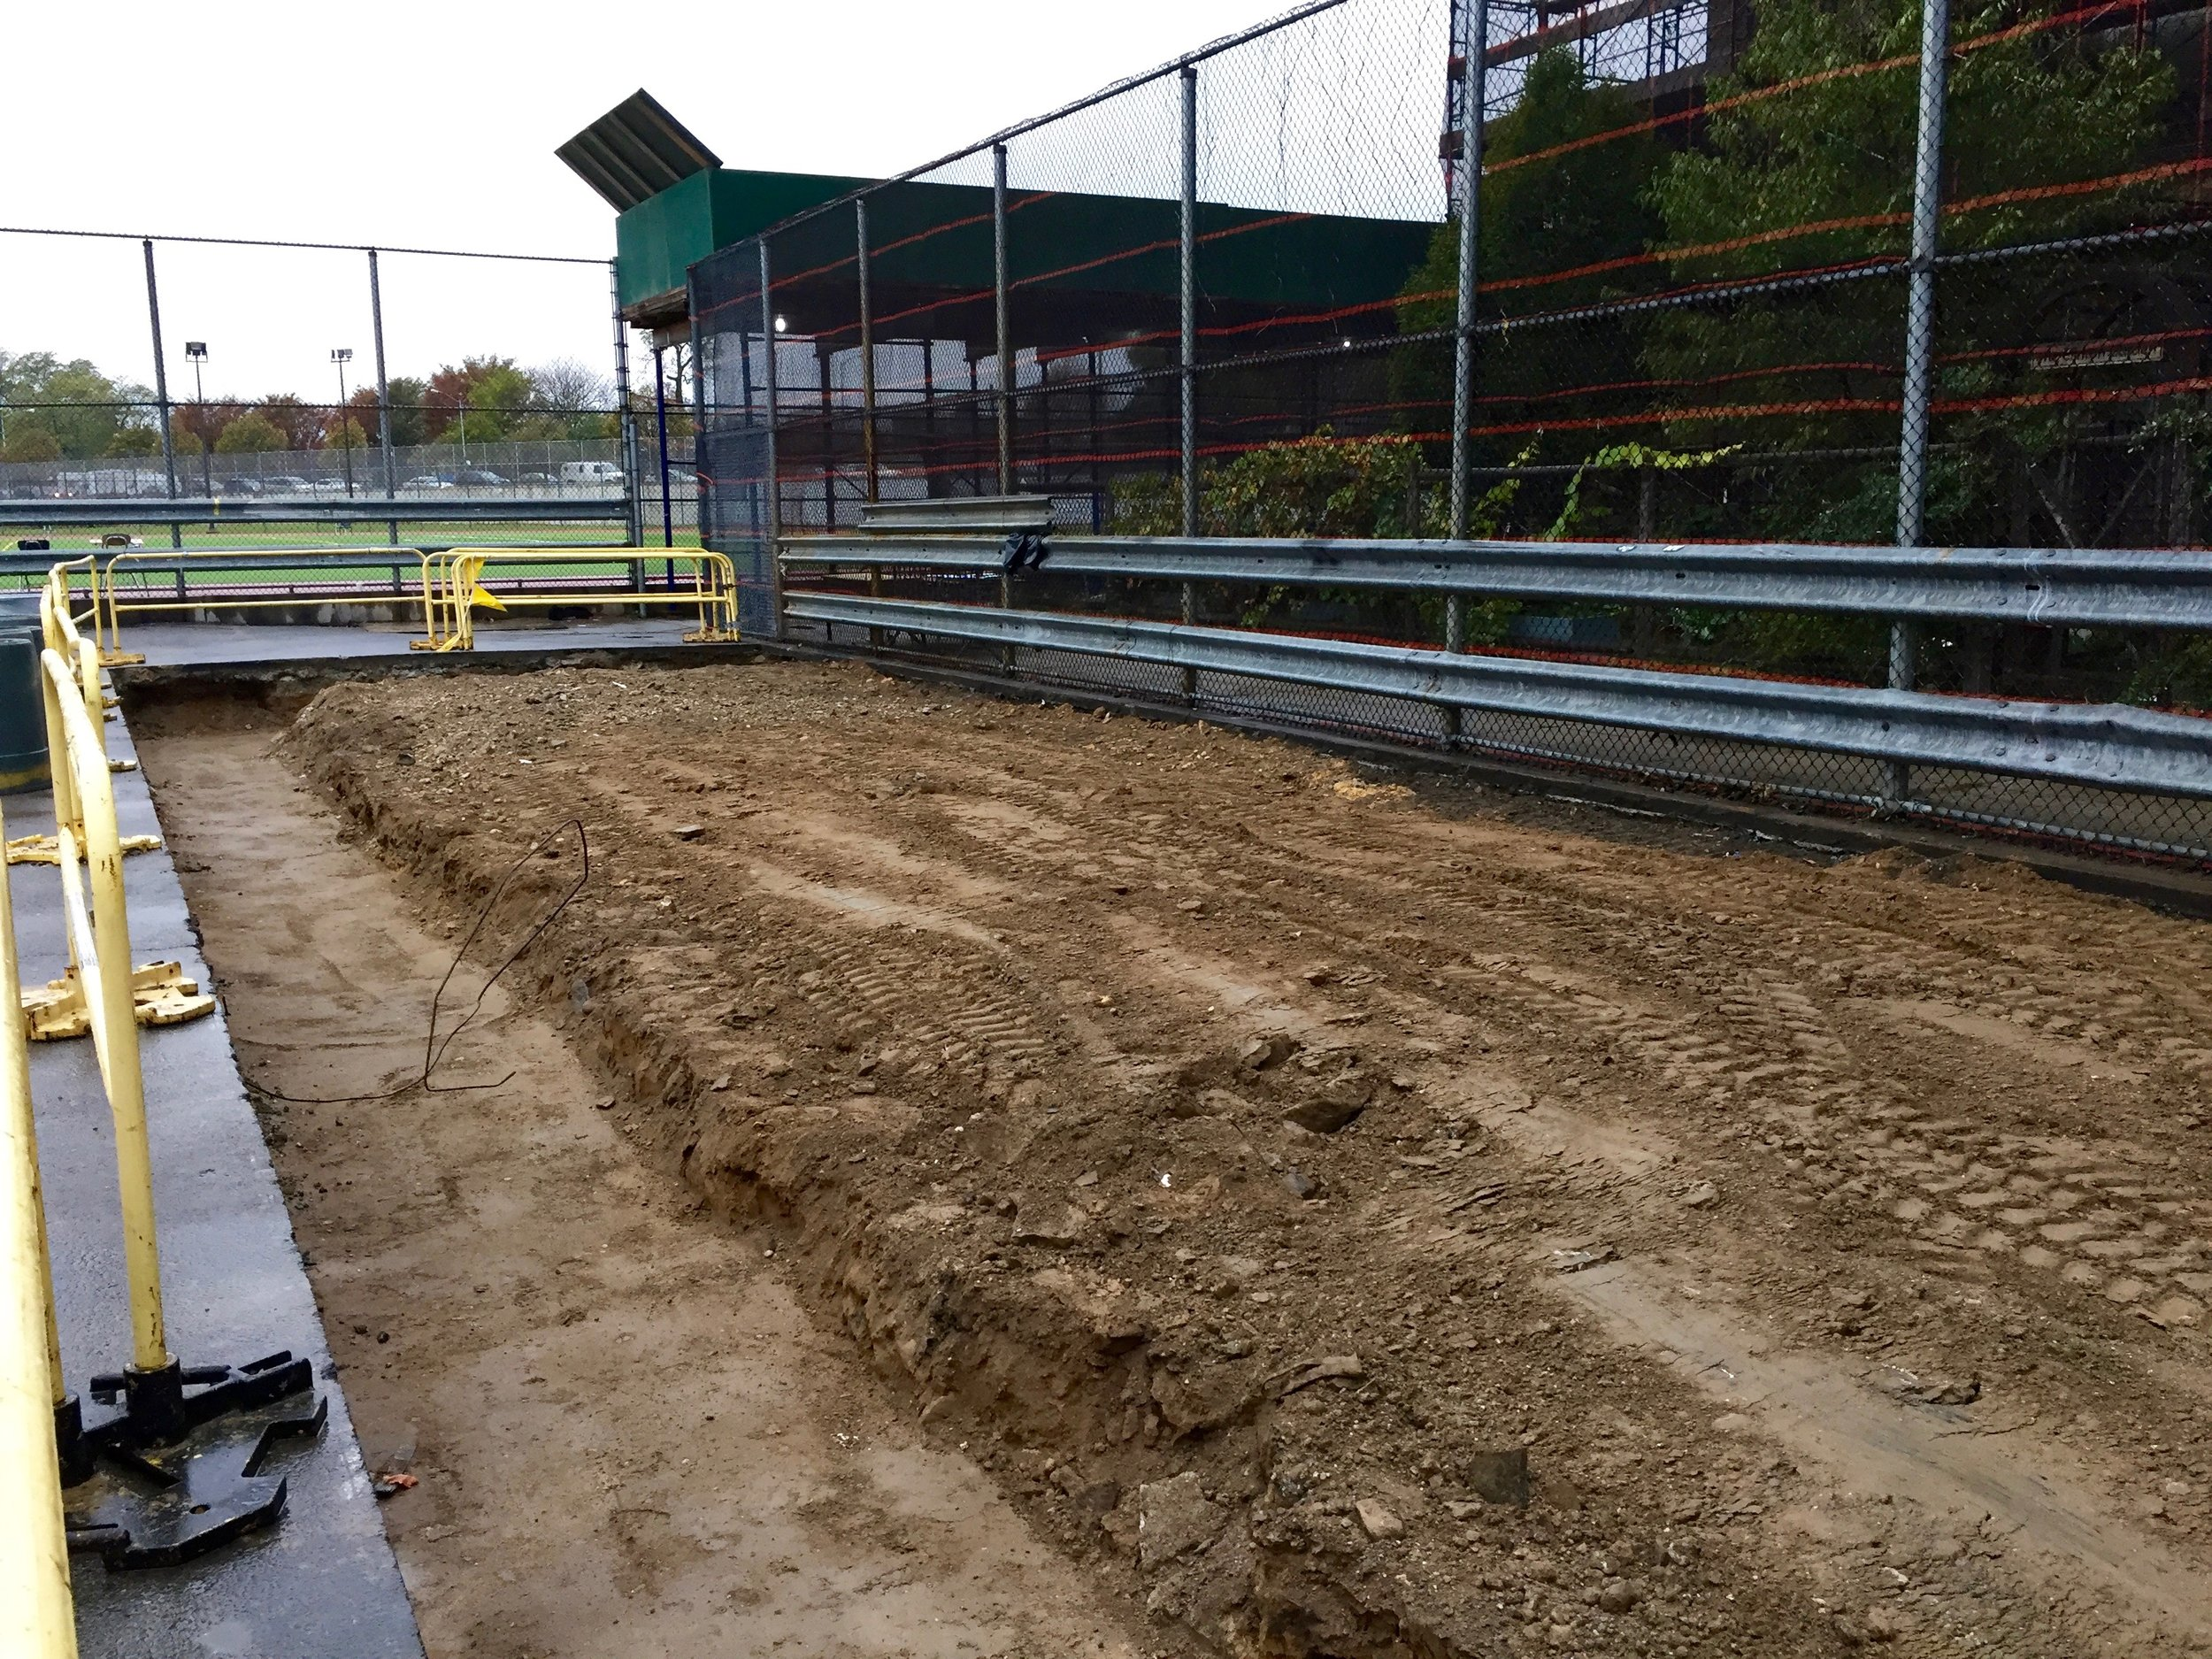 Behind the fence is the school's first garden site, which will nearly double in size after this excavated area has been finished.